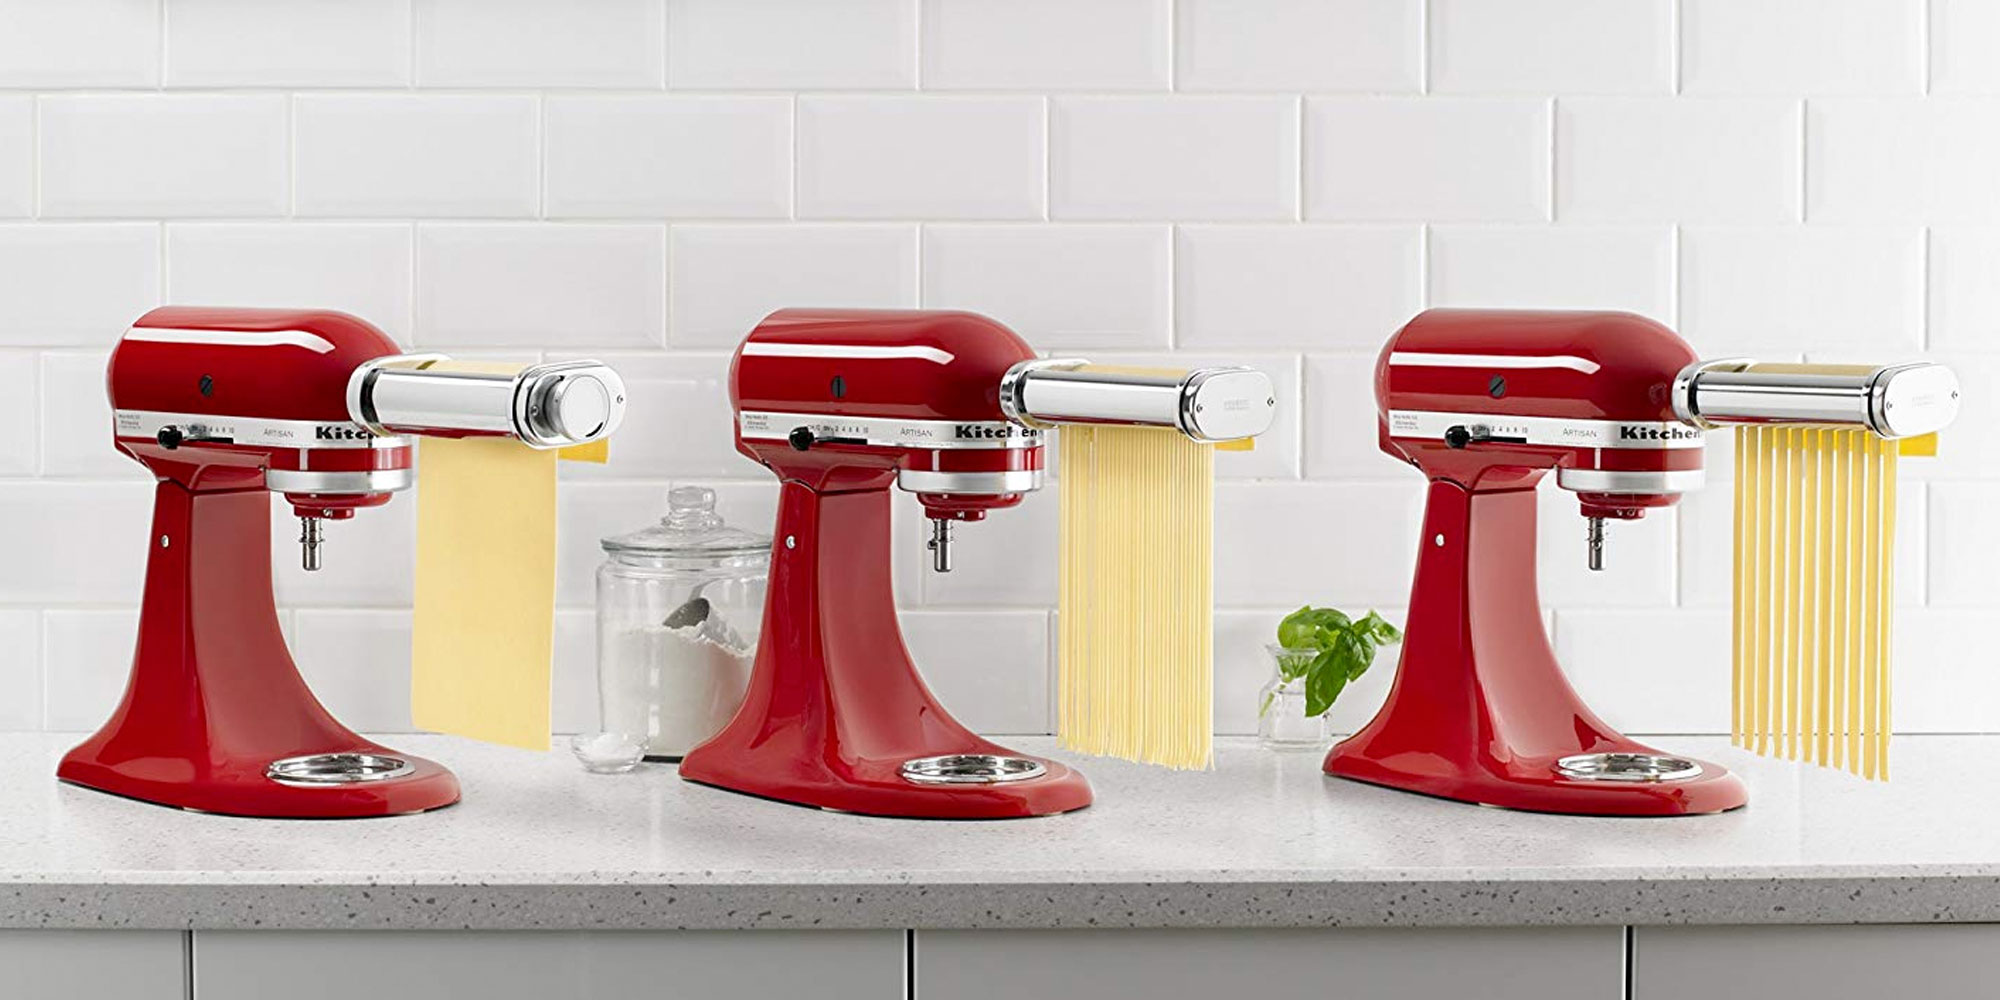 Make pasta at home w/ KitchenAid's roller & cutter attachment for $100 Prime shipped (Reg. $120+)